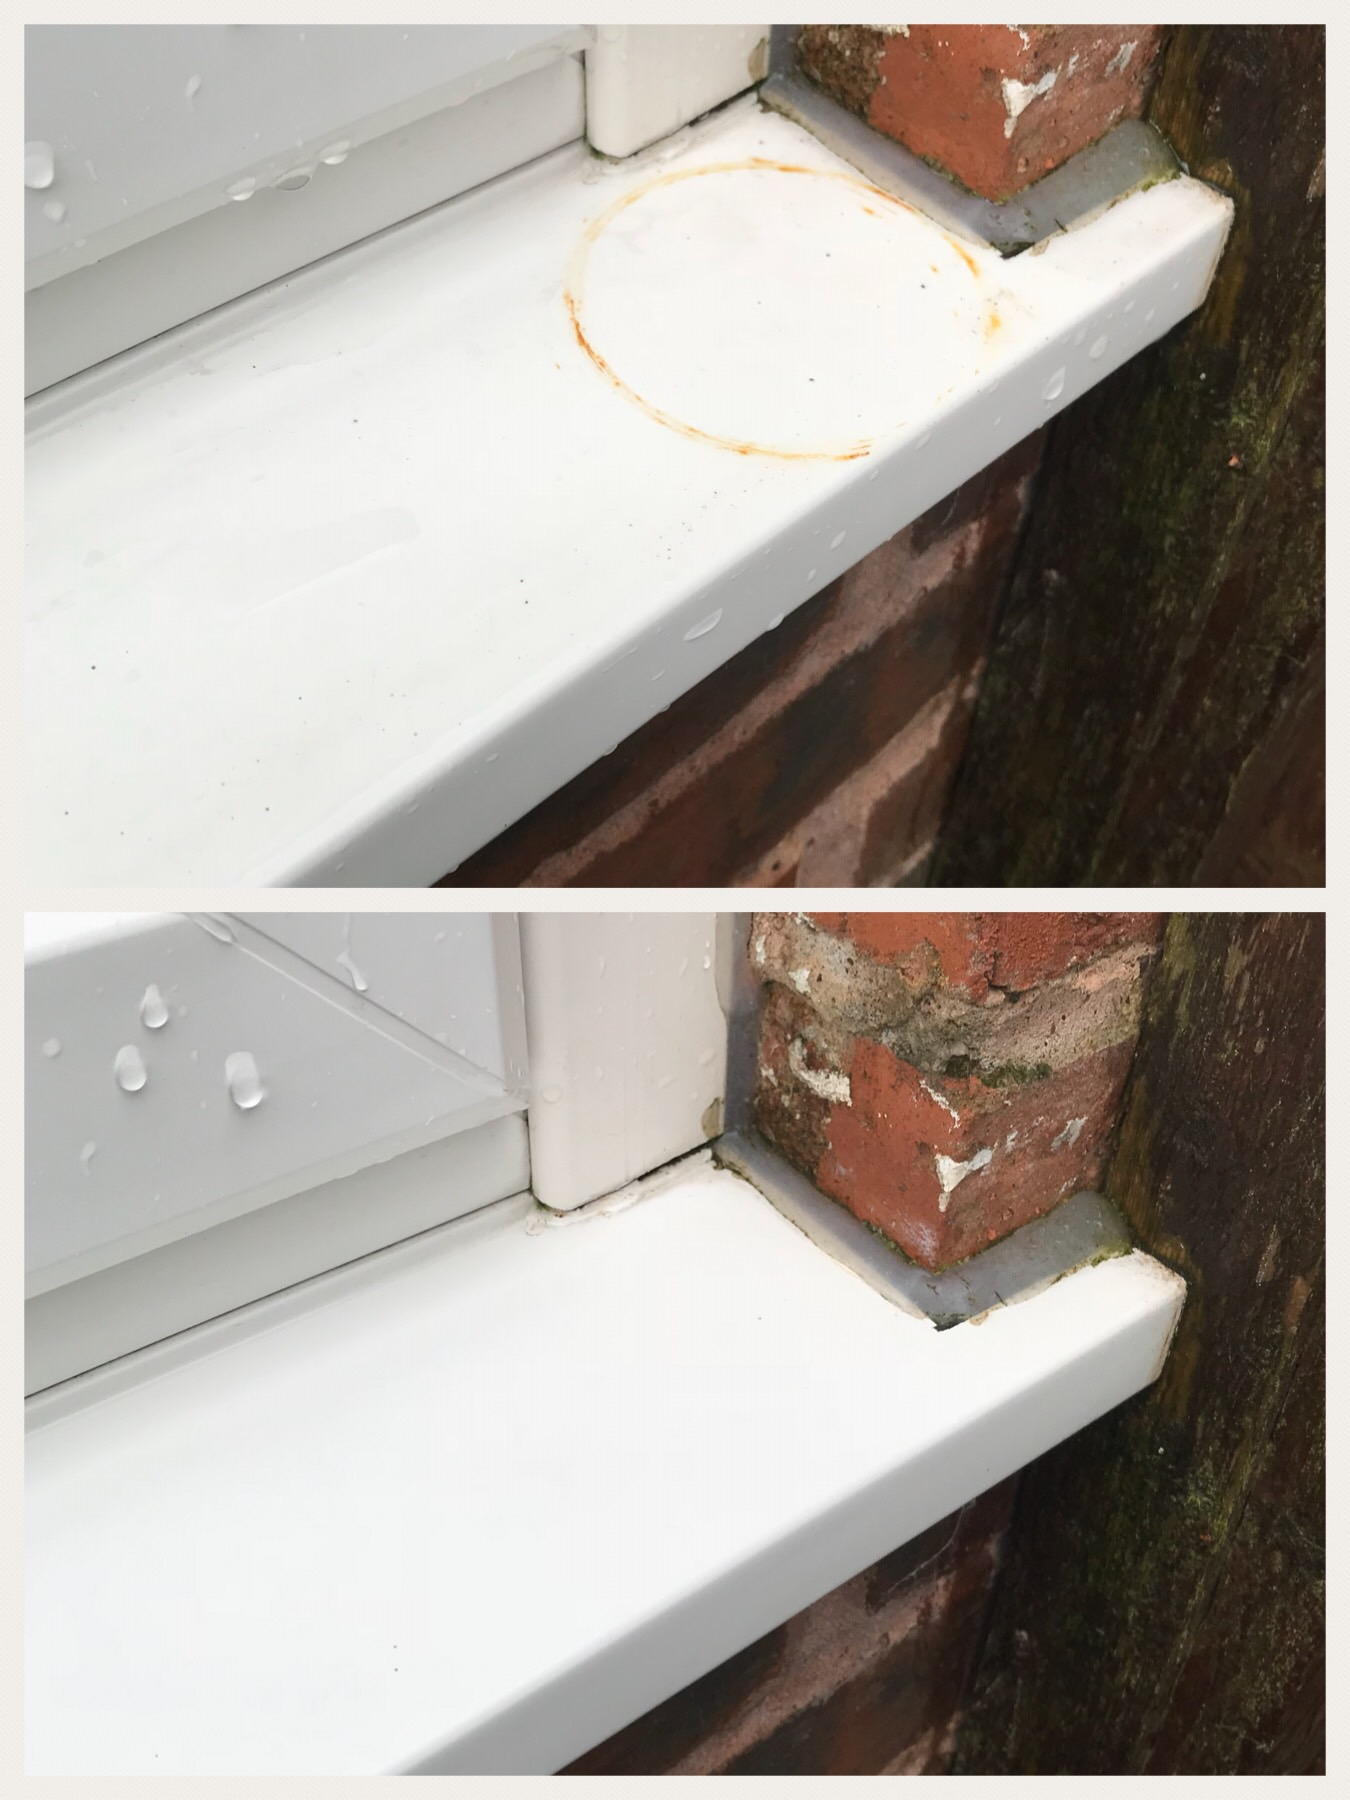 Rust stain removal from window frame.